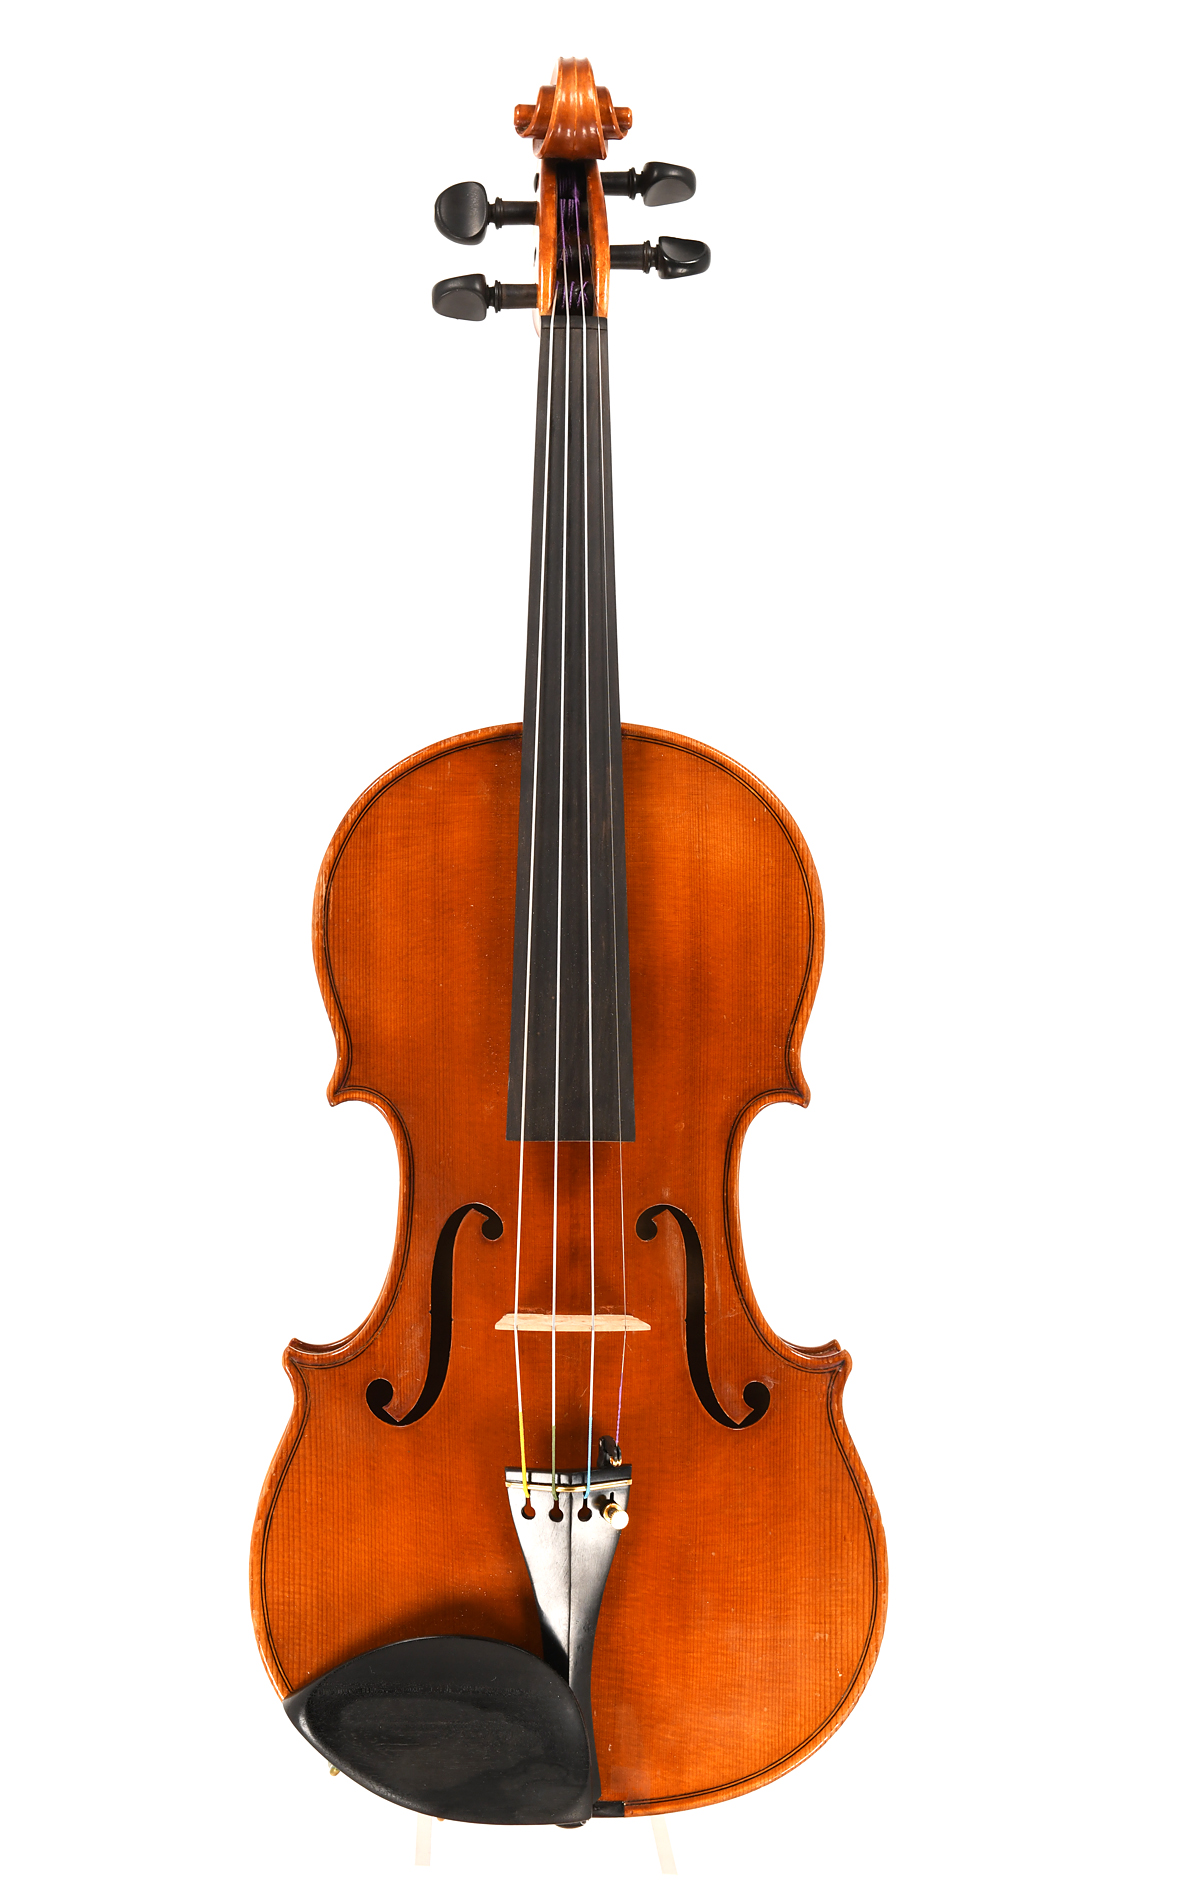 Unnamed Markneukirchen violin of quality. c.1980